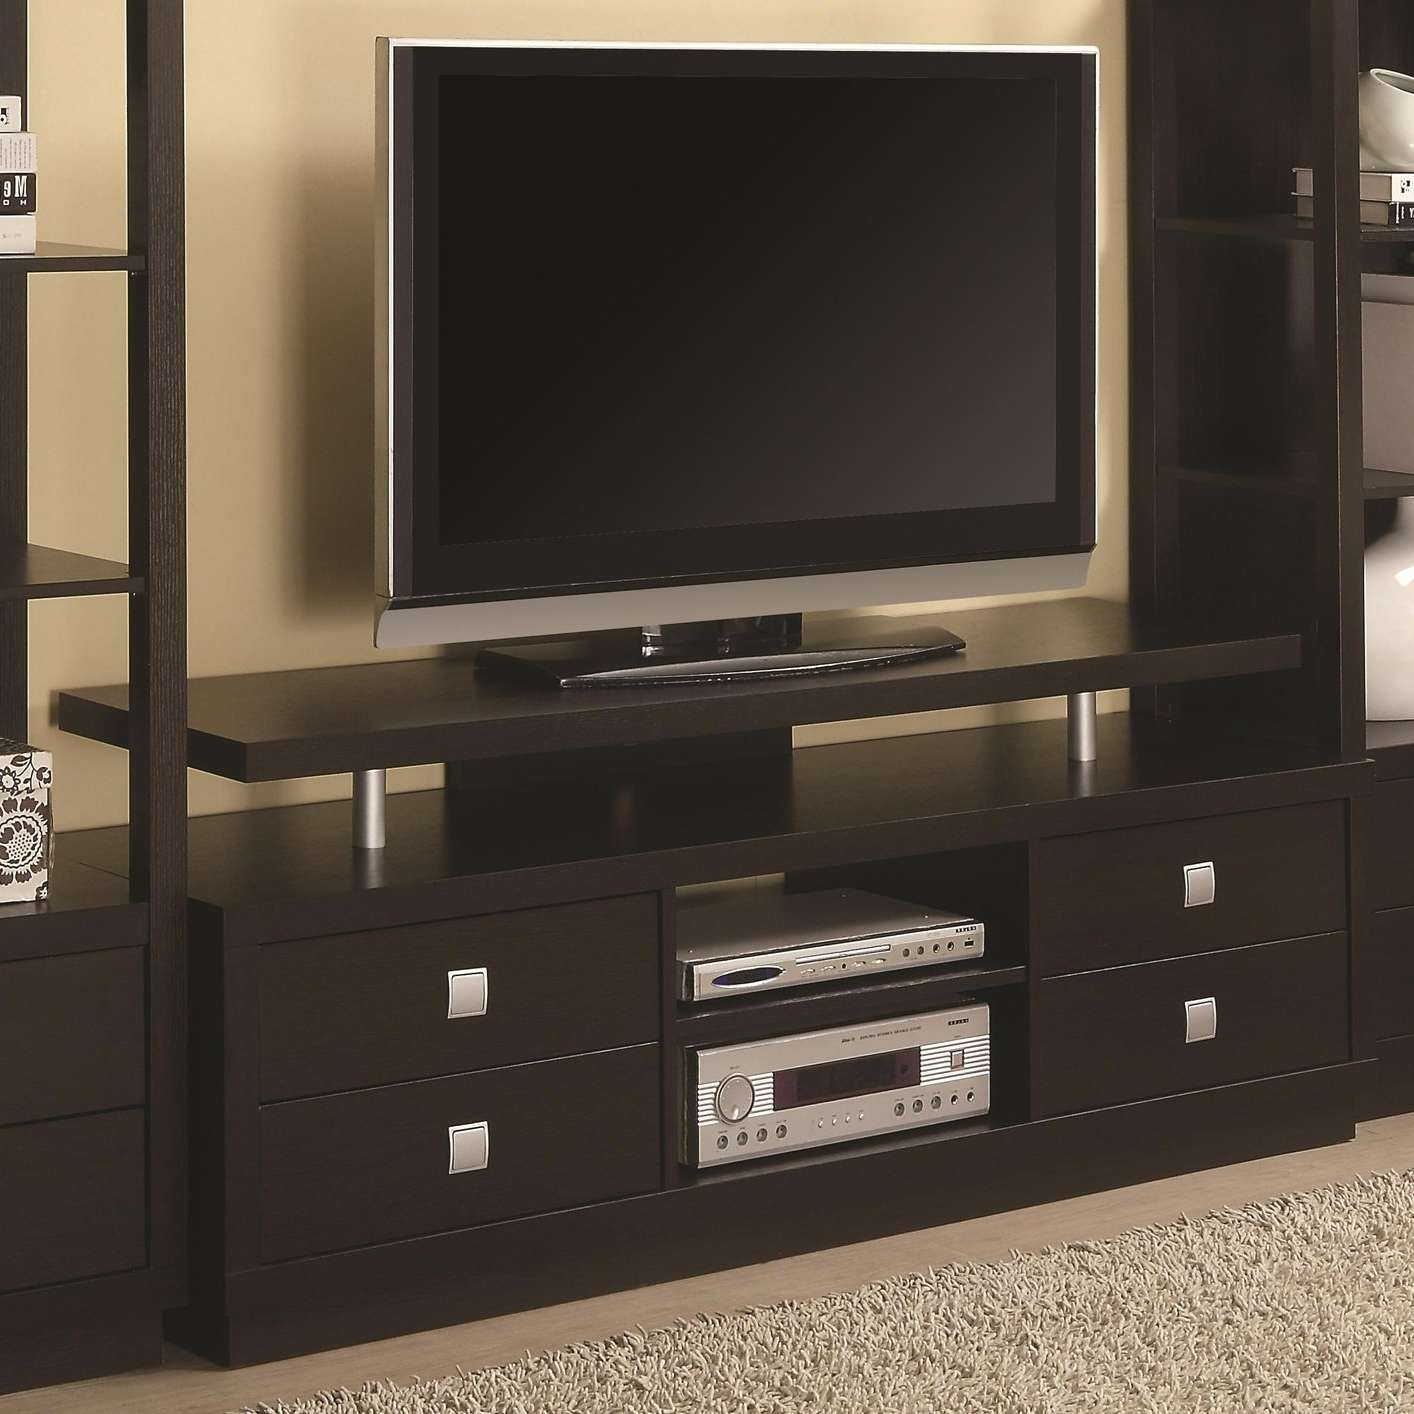 Brown Wood Tv Stand – Steal A Sofa Furniture Outlet Los Angeles Ca Regarding Wooden Tv Stands (View 7 of 15)